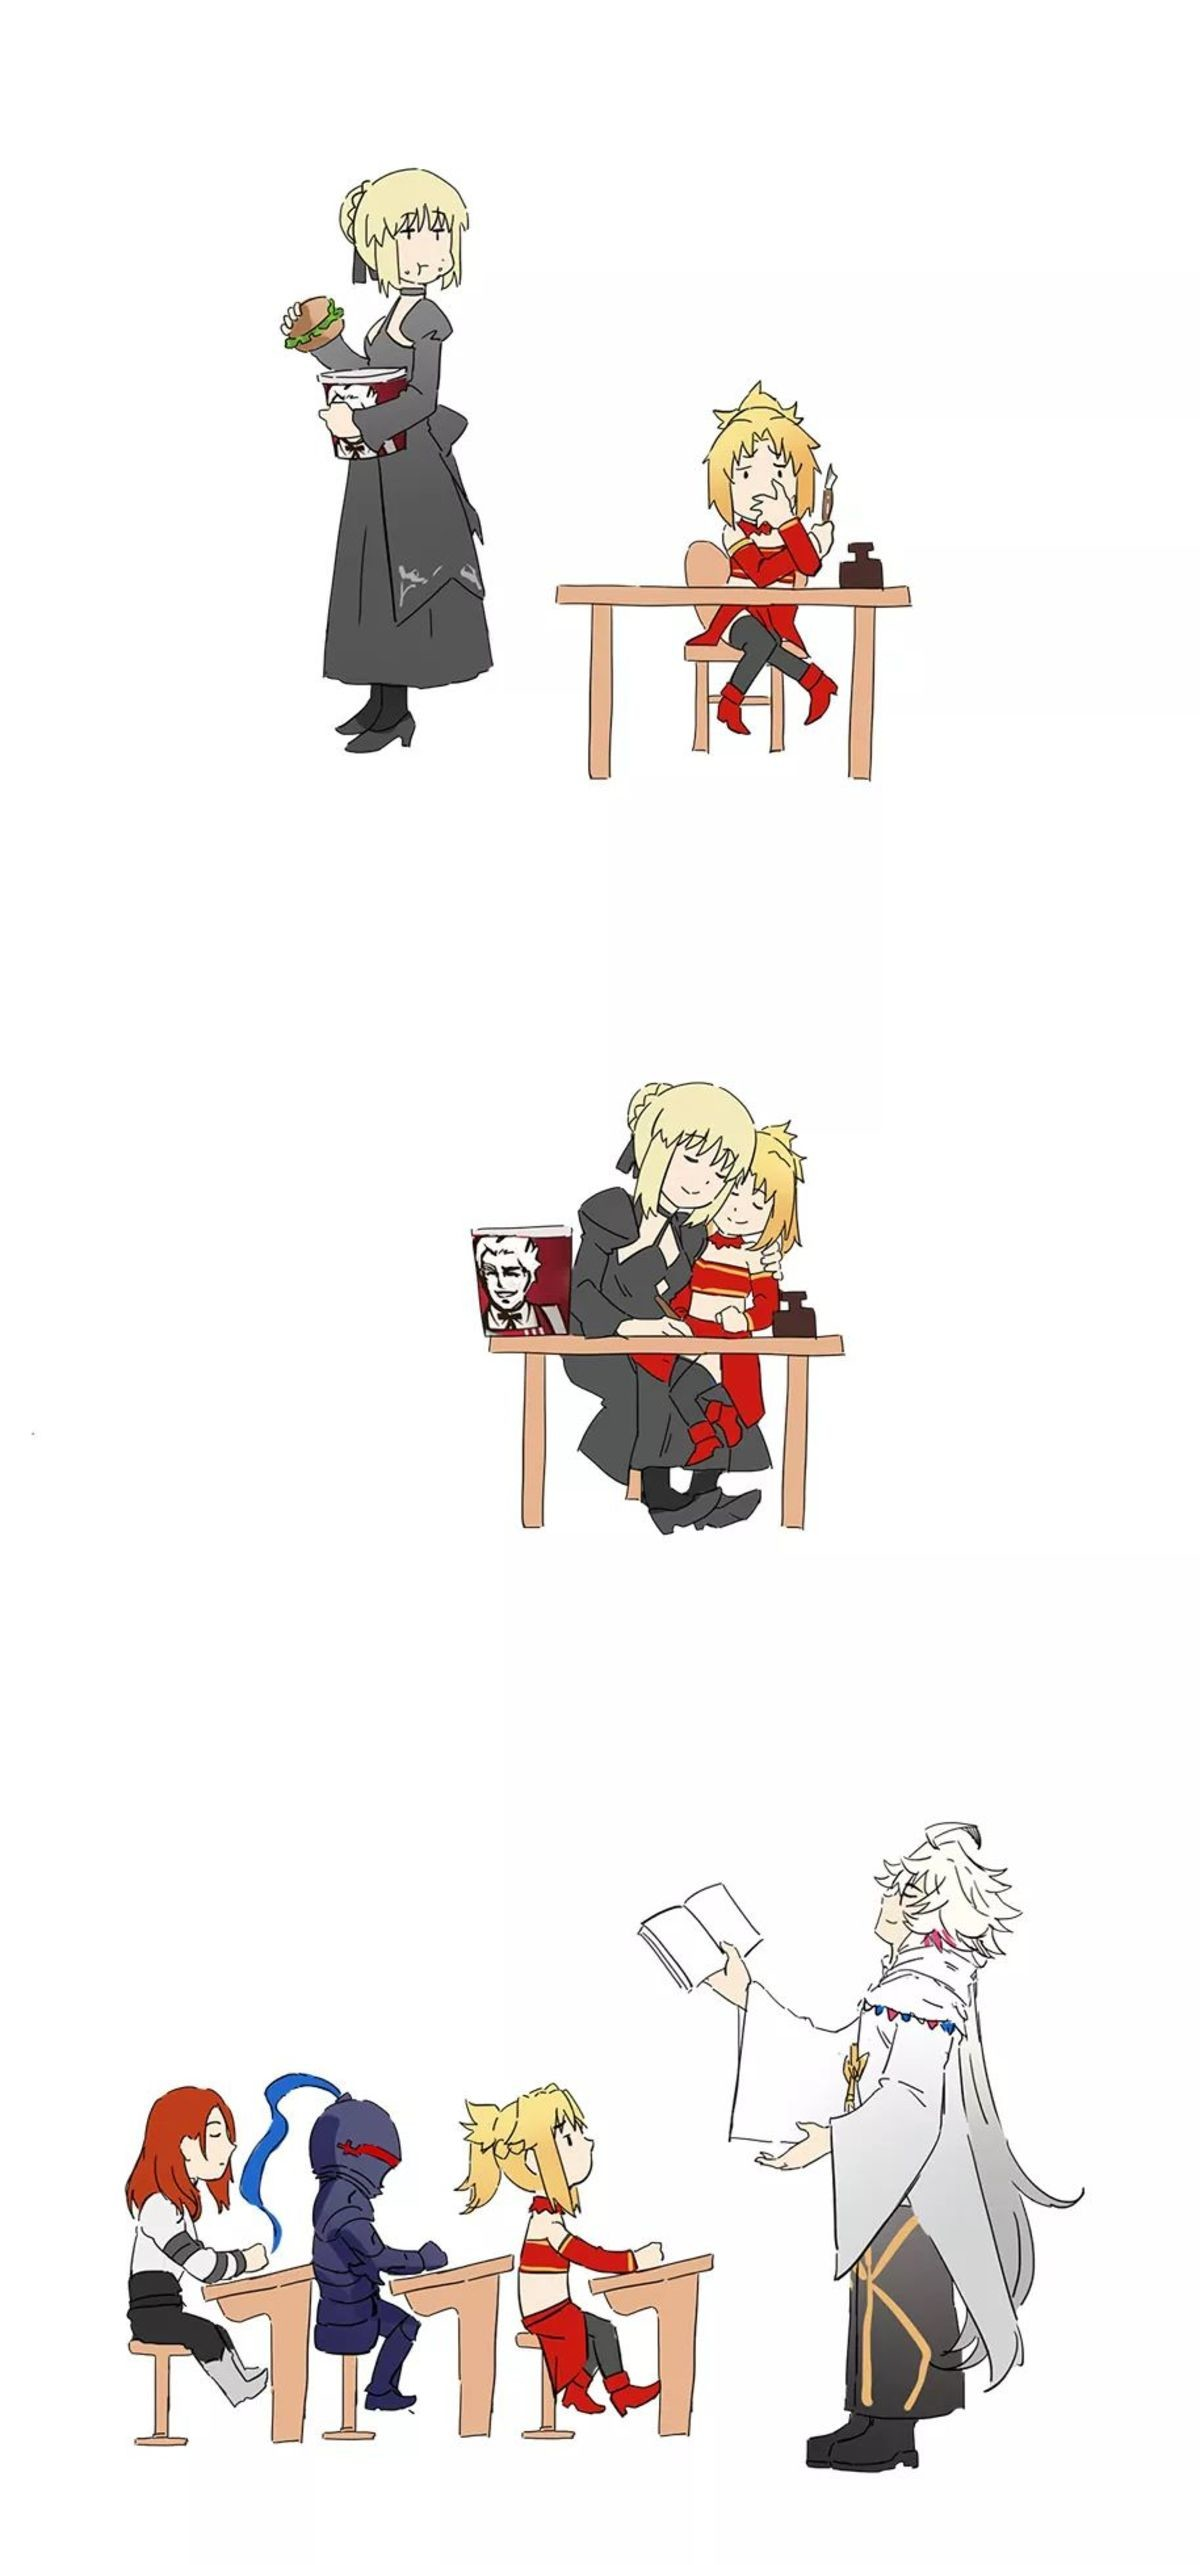 Mordreds Daily Life. illust.php?mode=medium&illustid=67049435 join list: SmolHol (1464 subs)Mention History join list:. What, is that saber's kink